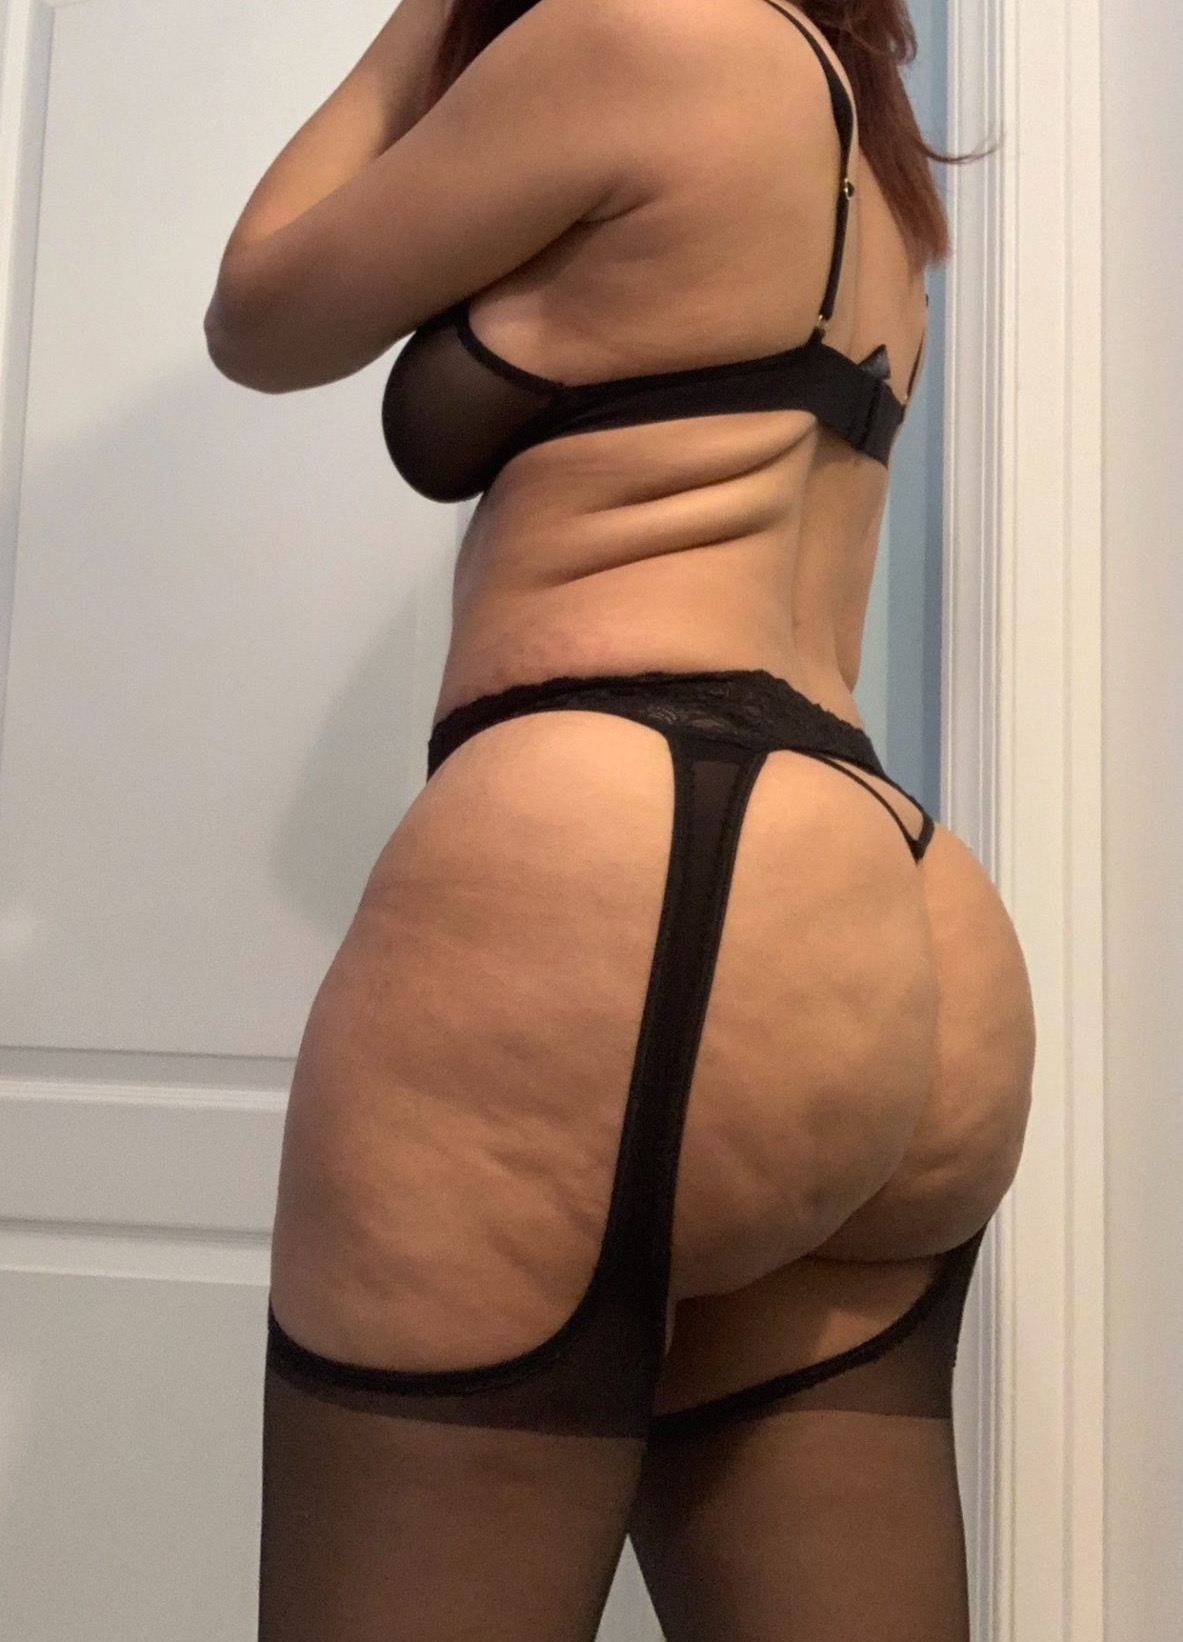 FULL VIDEO: Jessica Reddy Nude Onlyfans Leaked!